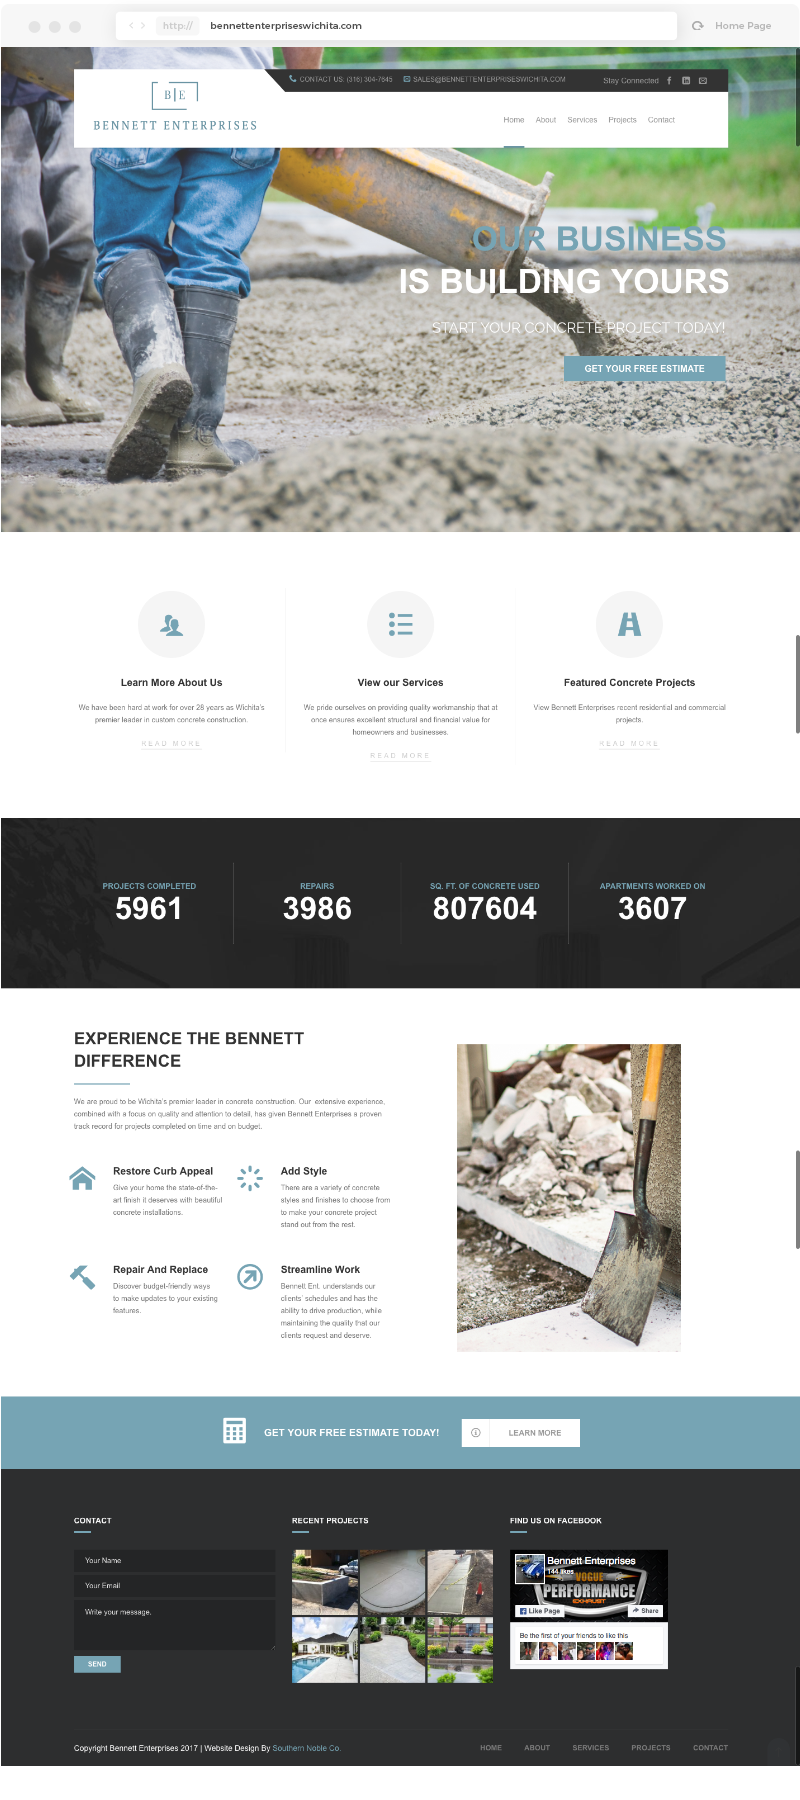 Bennett Enterprises Homepage Design